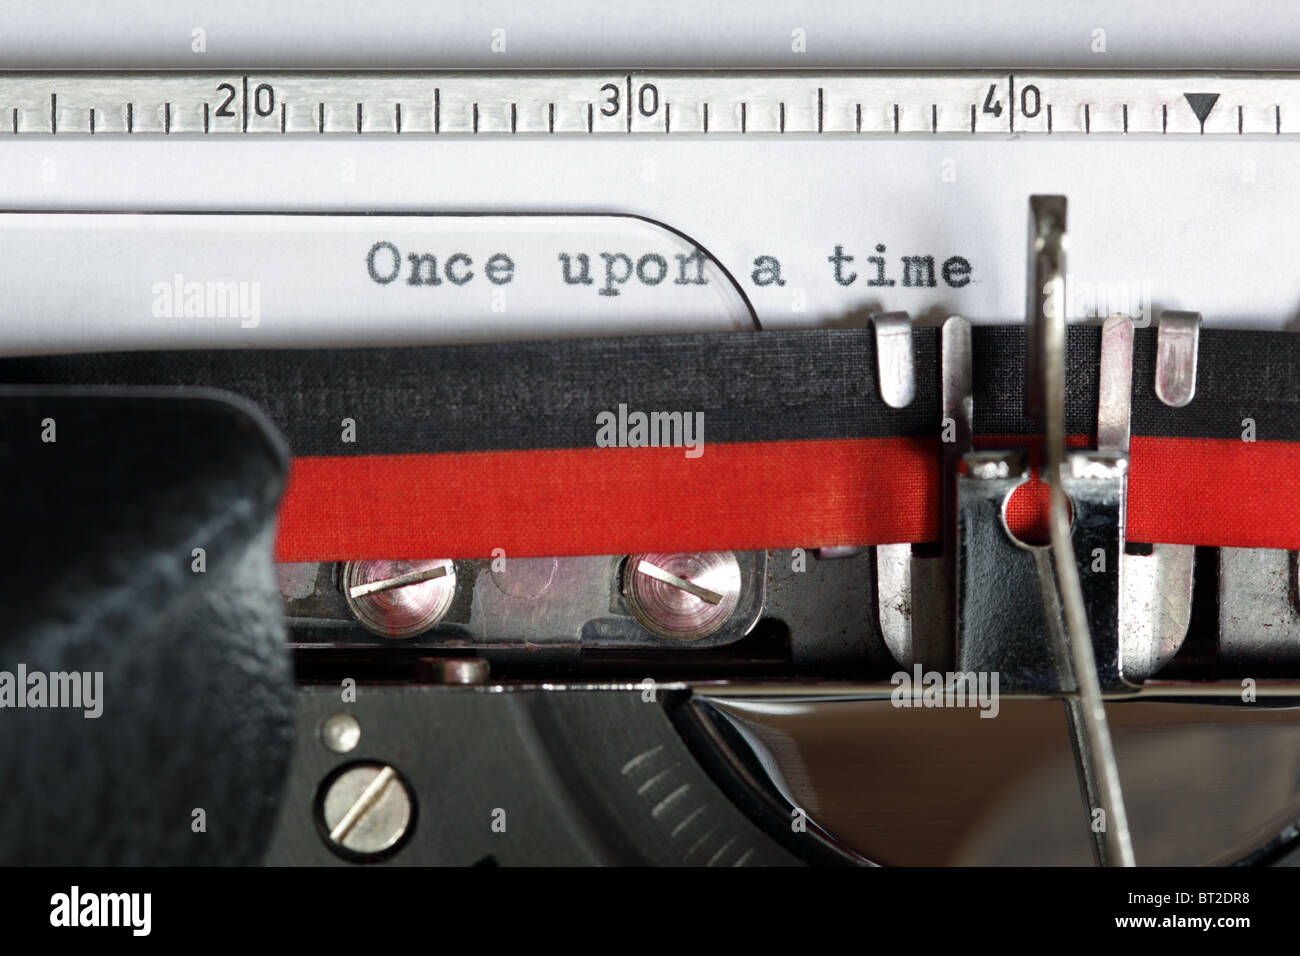 Typewriter - Once upon a time - Stock Image